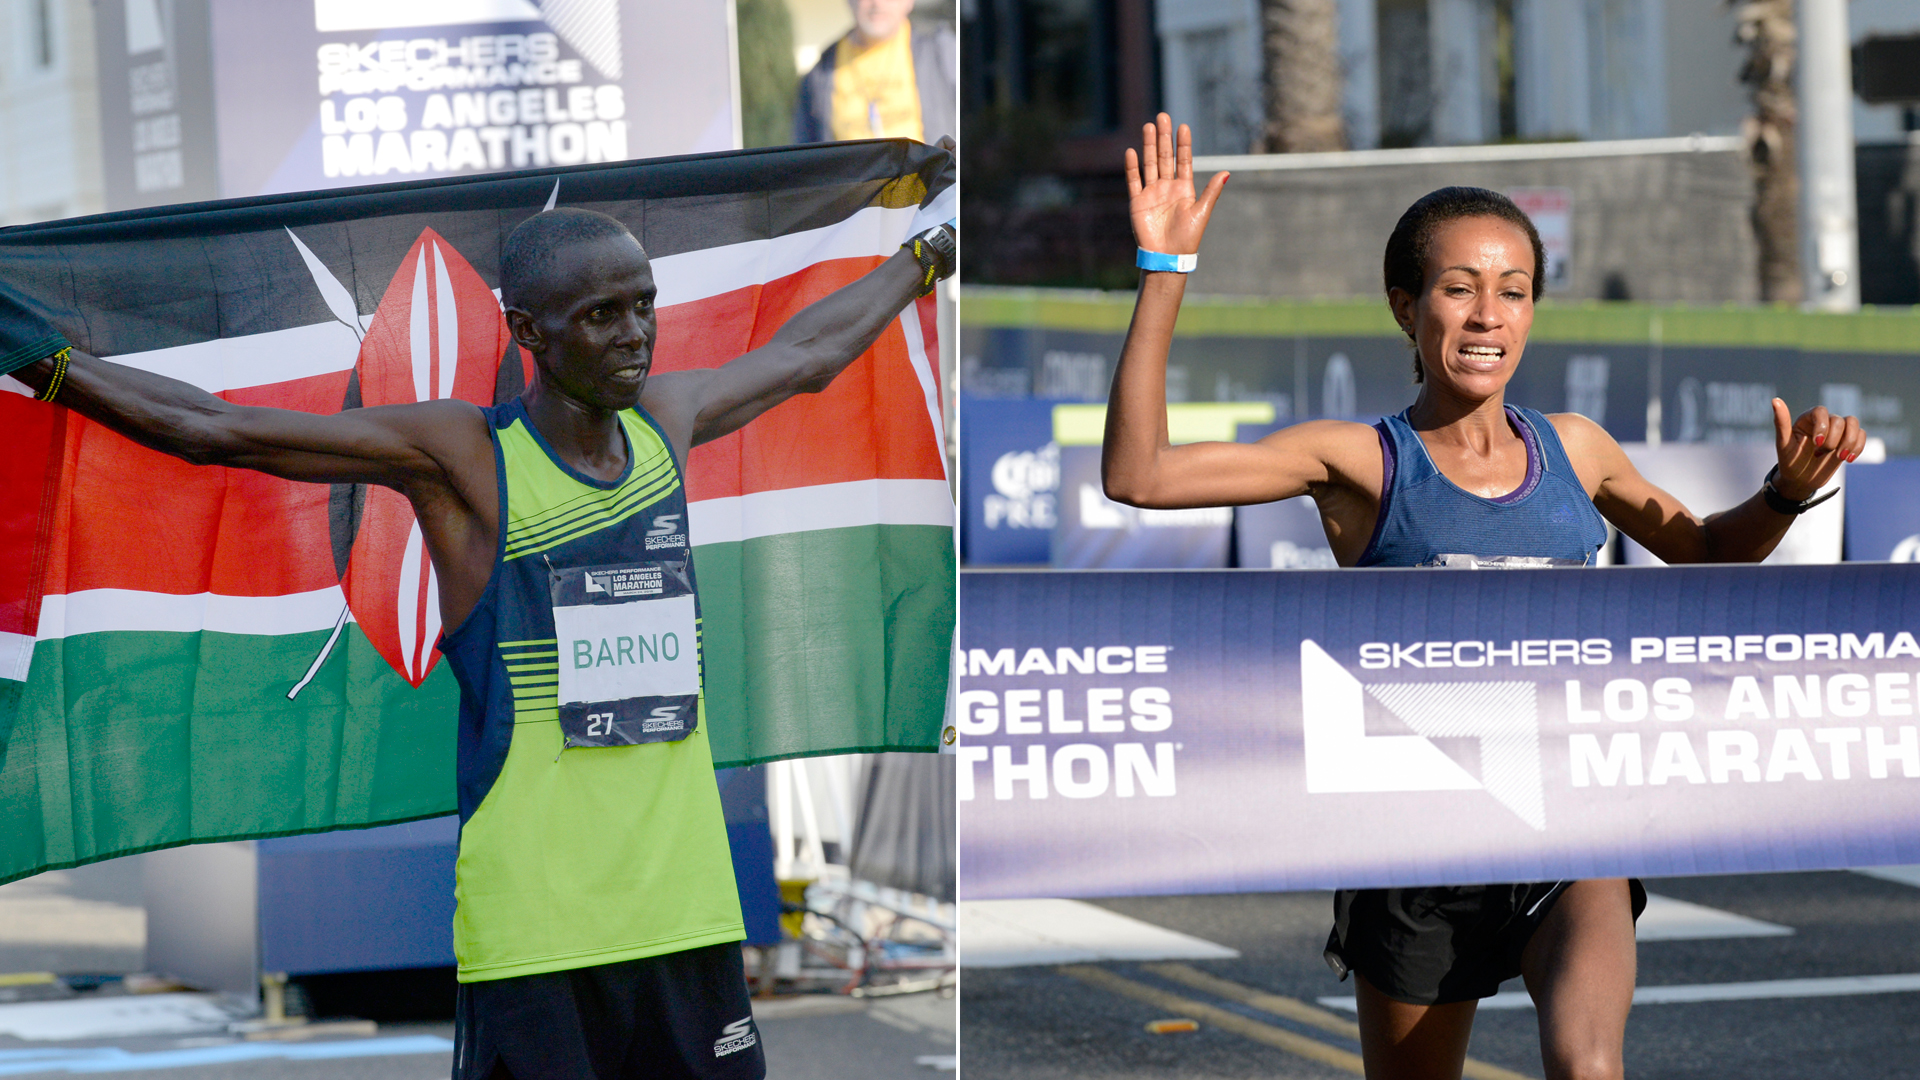 Elisha Barno, left, and Askale Merachi are seen at the end of the Los Angeles Marathon on March 24, 2019. (Credit: Jerod Harris/Getty Images for Conqur Endurance Group)